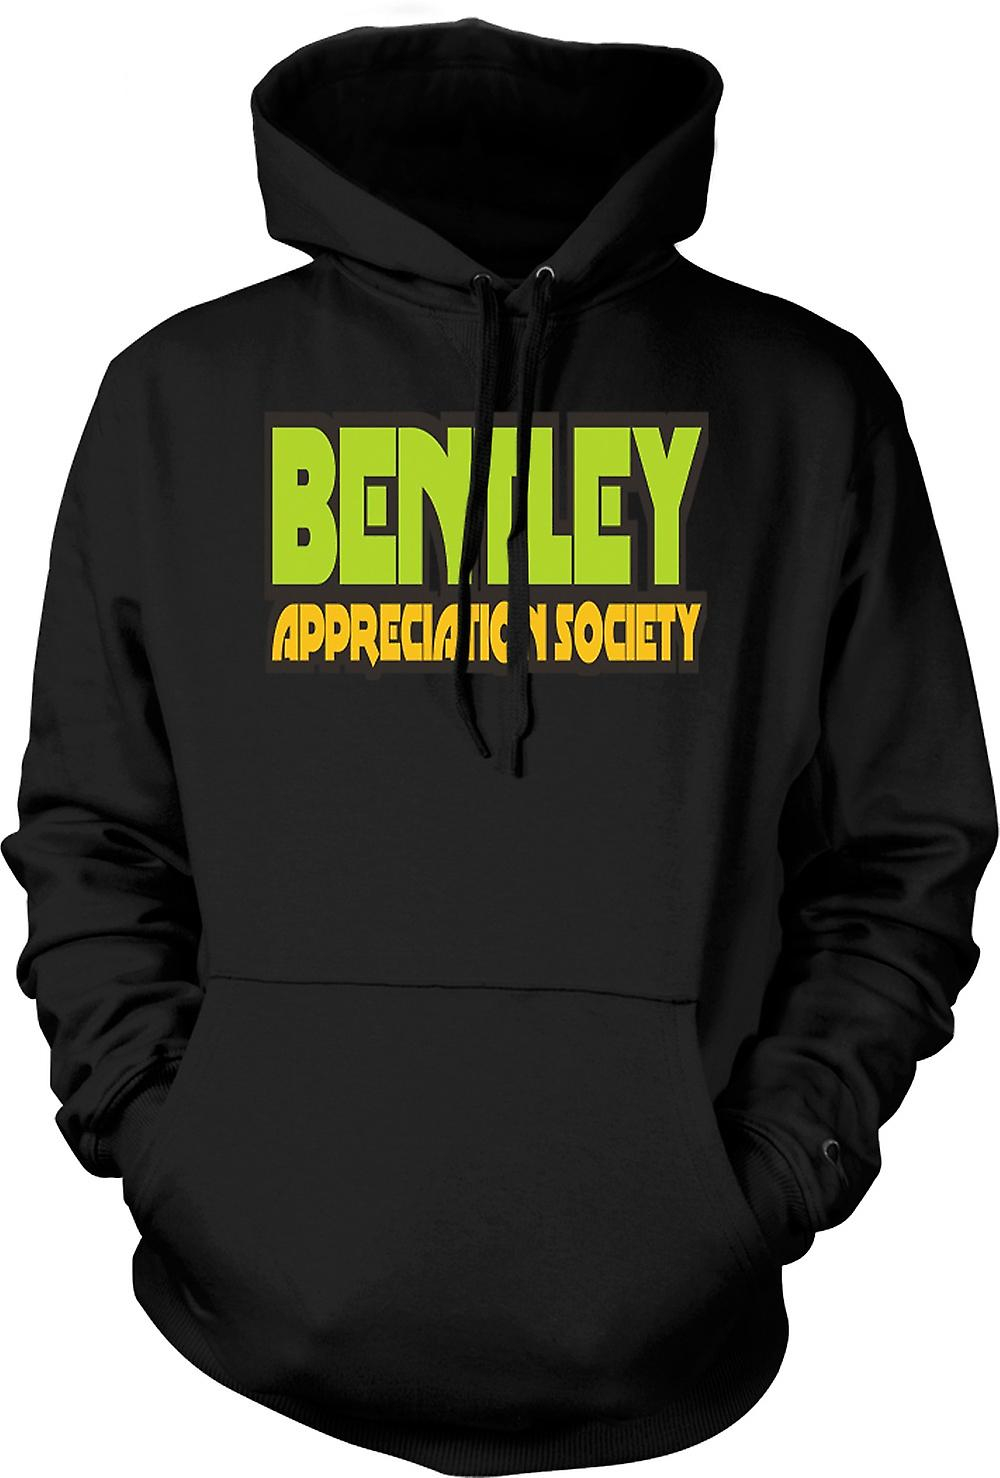 Mens Hoodie - Bentley Appreciation Society